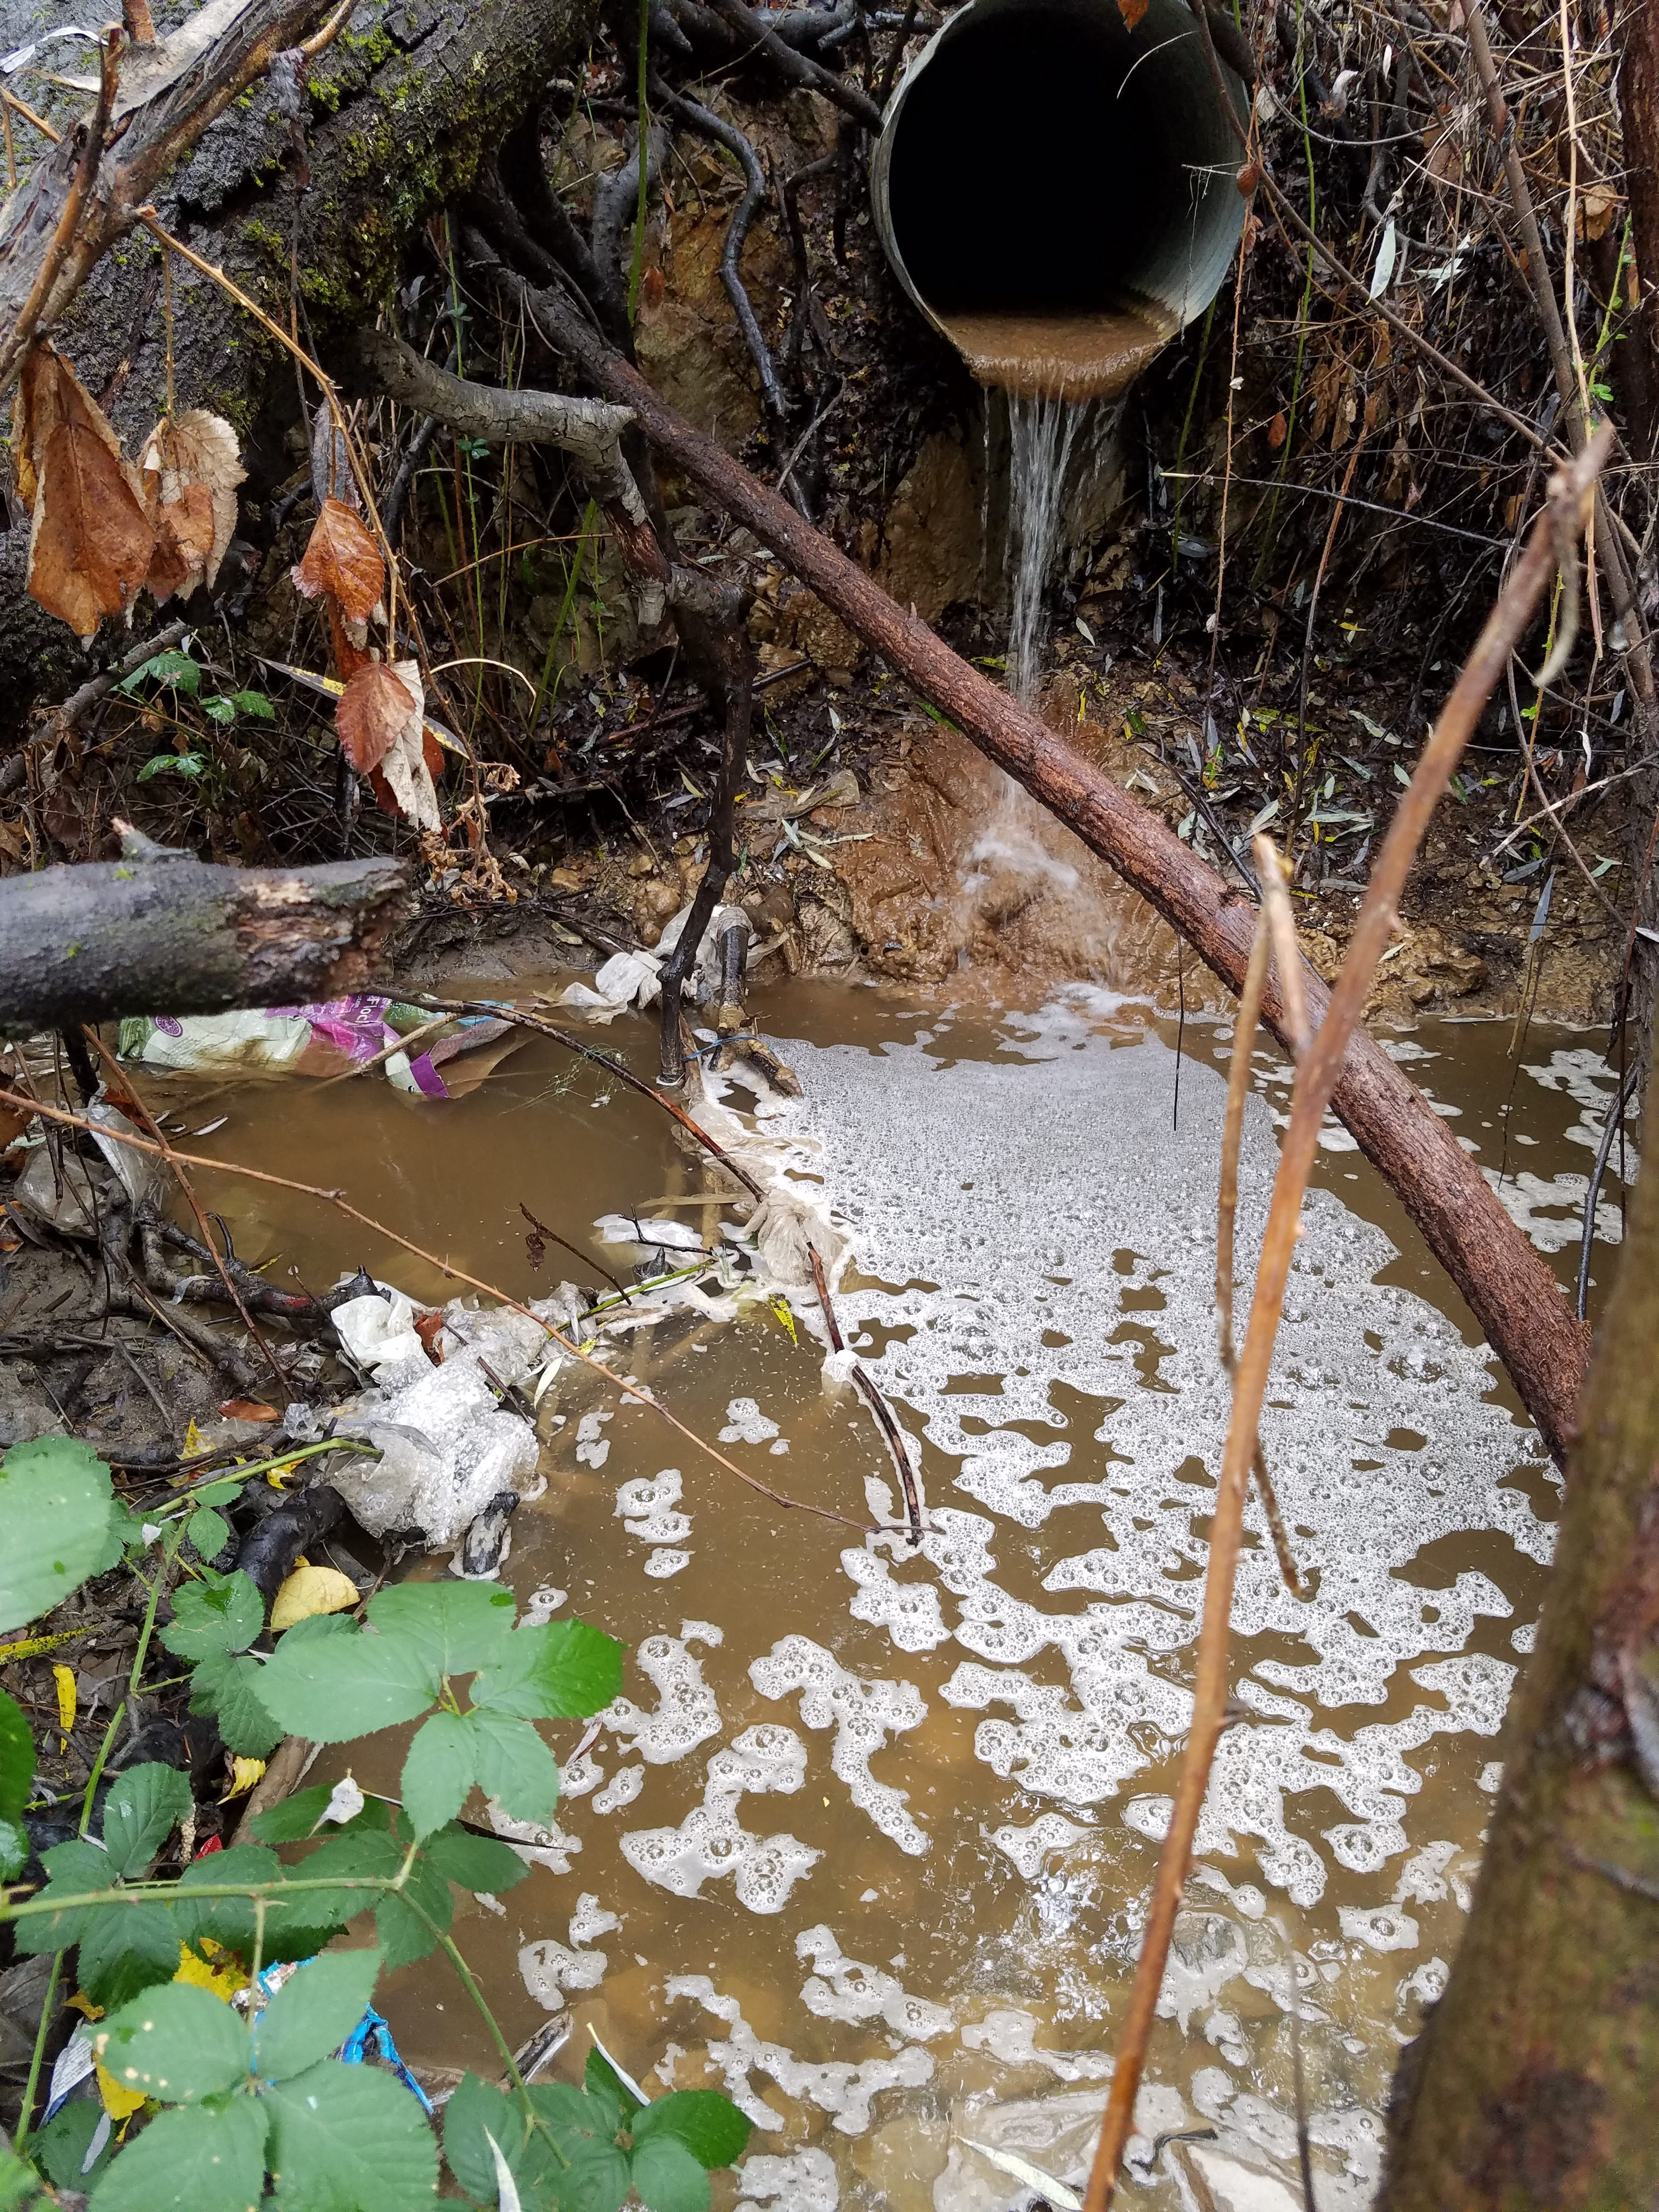 October rains brought the caustic water problem on the West Slope to the surface again. Photo/Provided